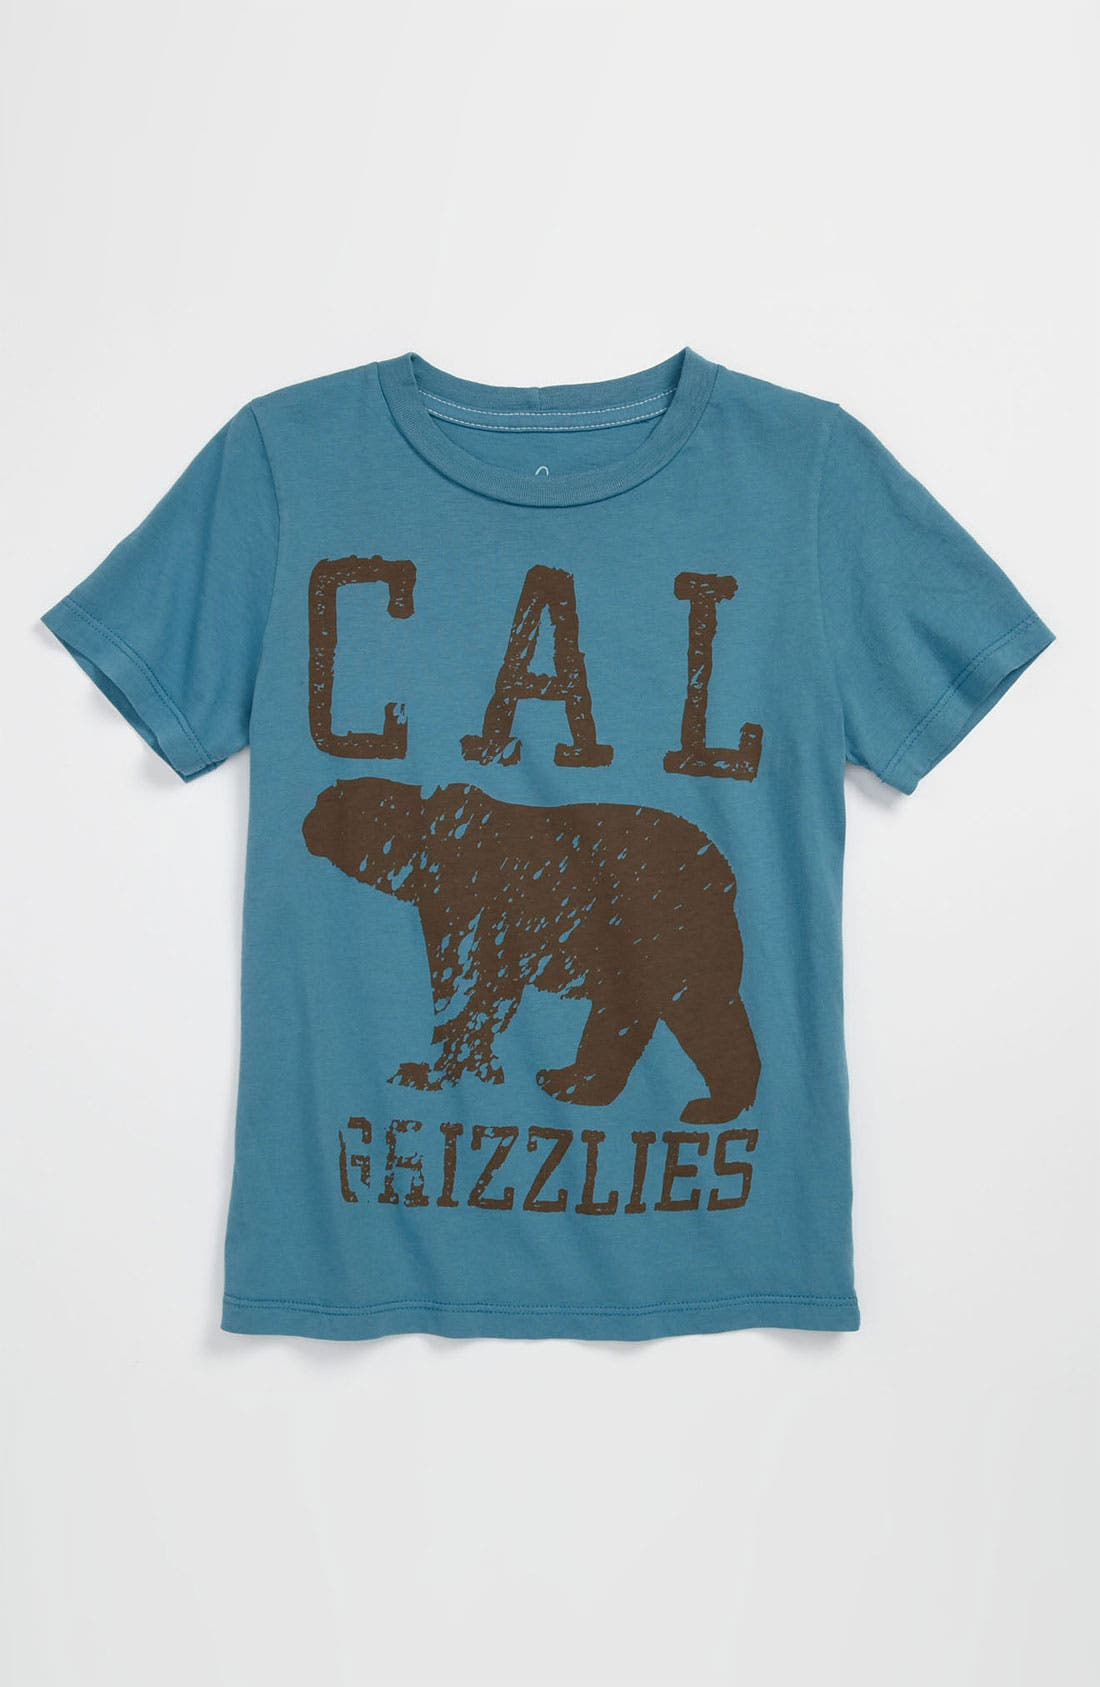 Alternate Image 1 Selected - Peek 'California Grizzlies' T-Shirt (Toddler, Little Boys & Big Boys)